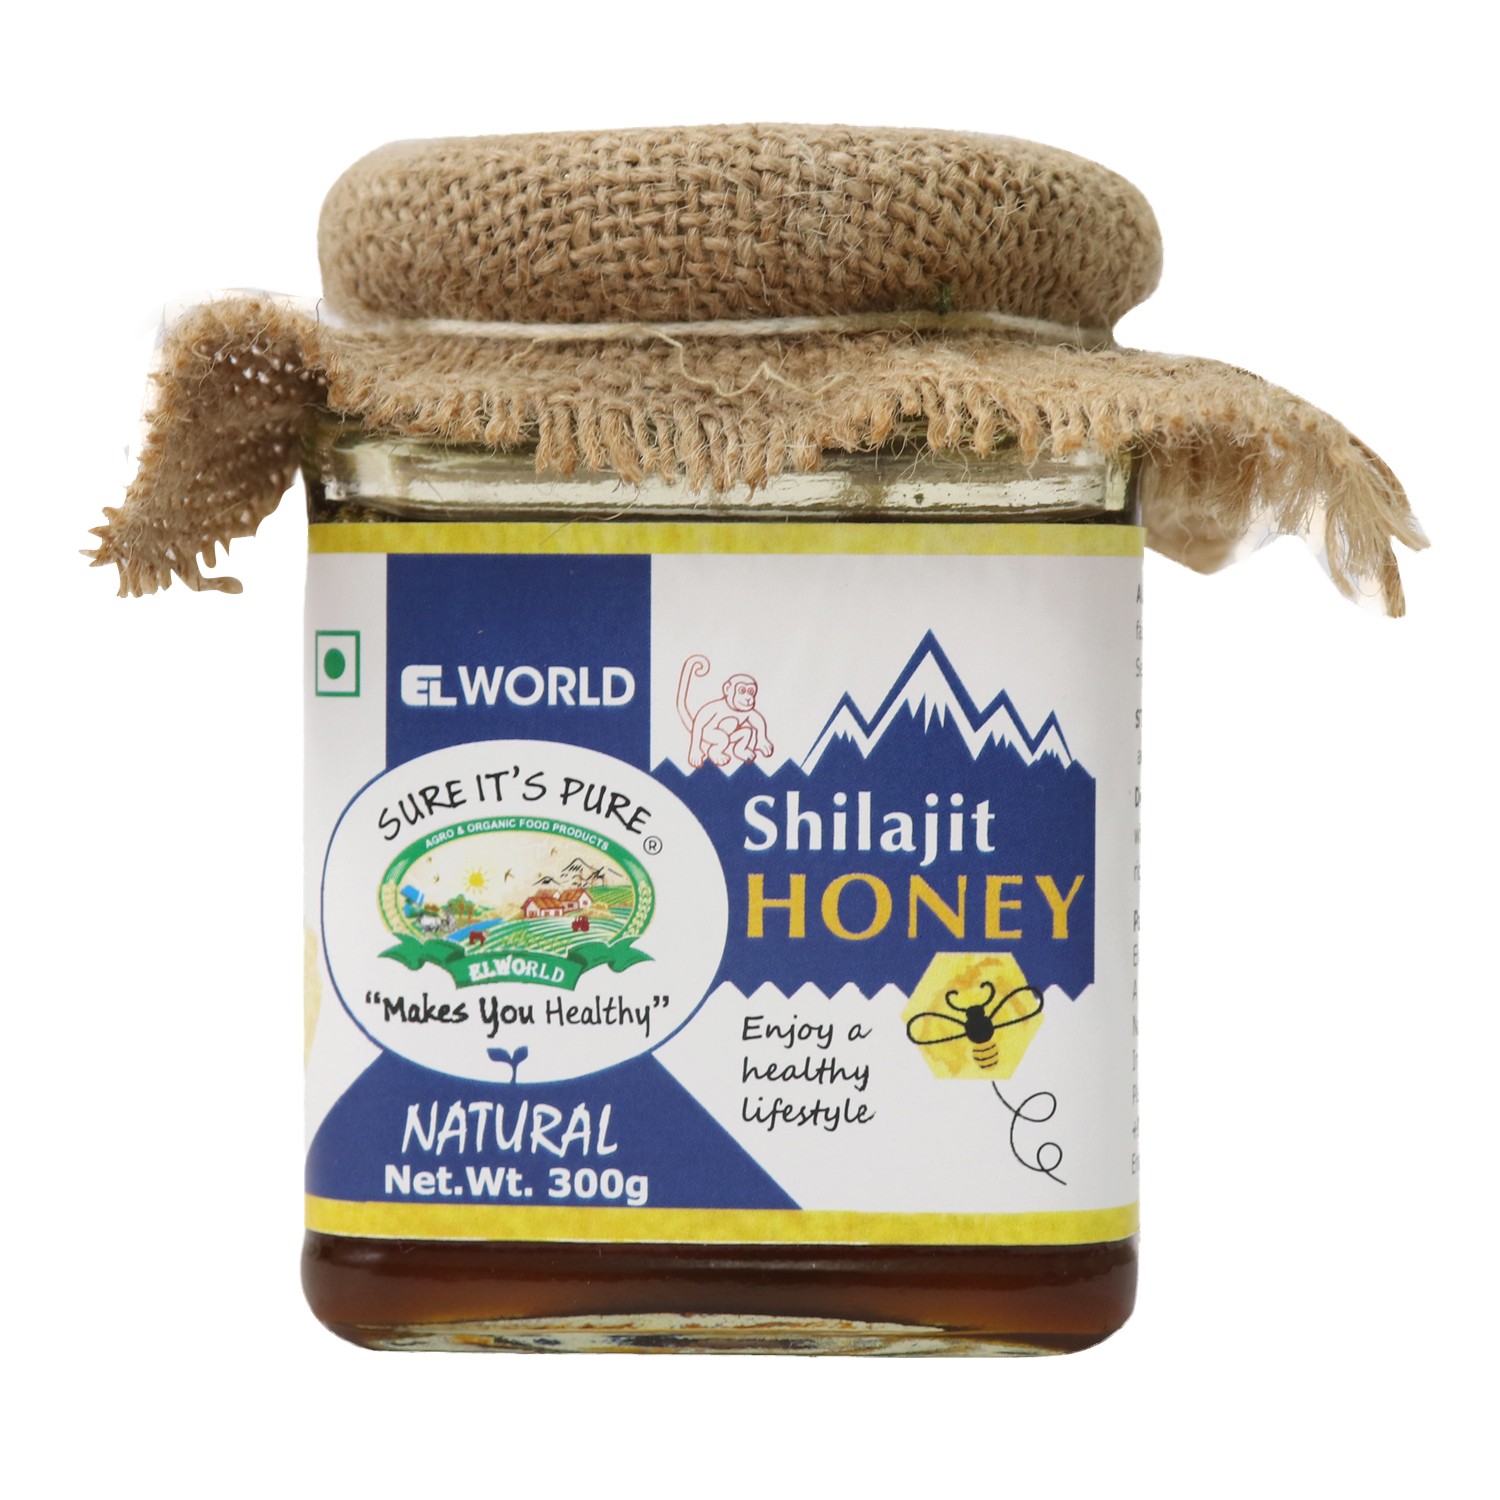 Order Now The Best Natural Shilajit Honey Delivered Right To You - Elworld Organic